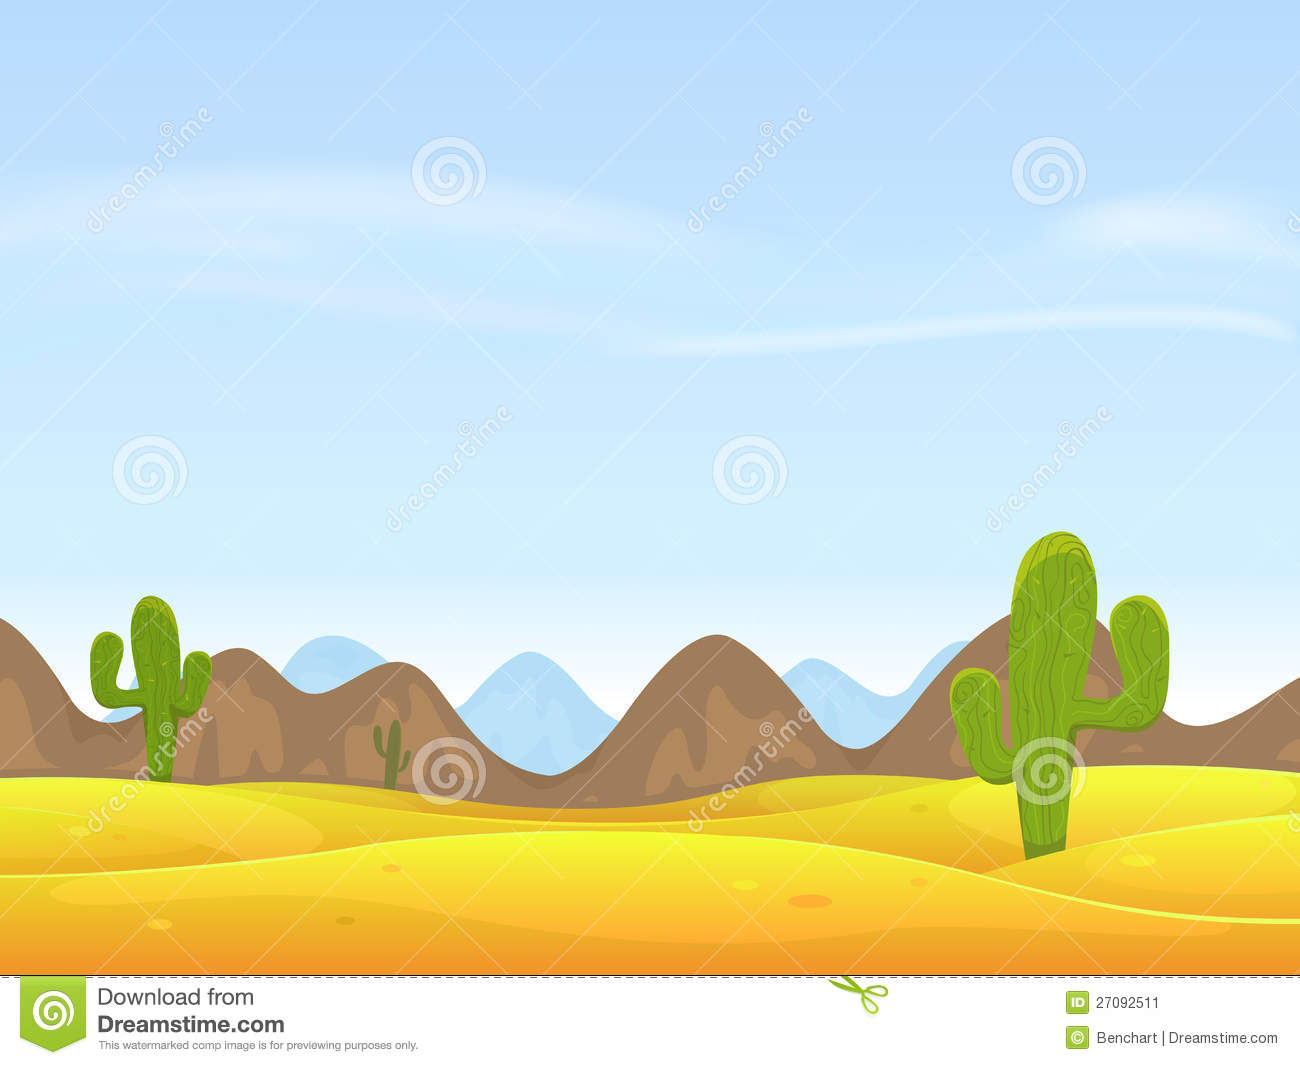 Amazoncom desert background